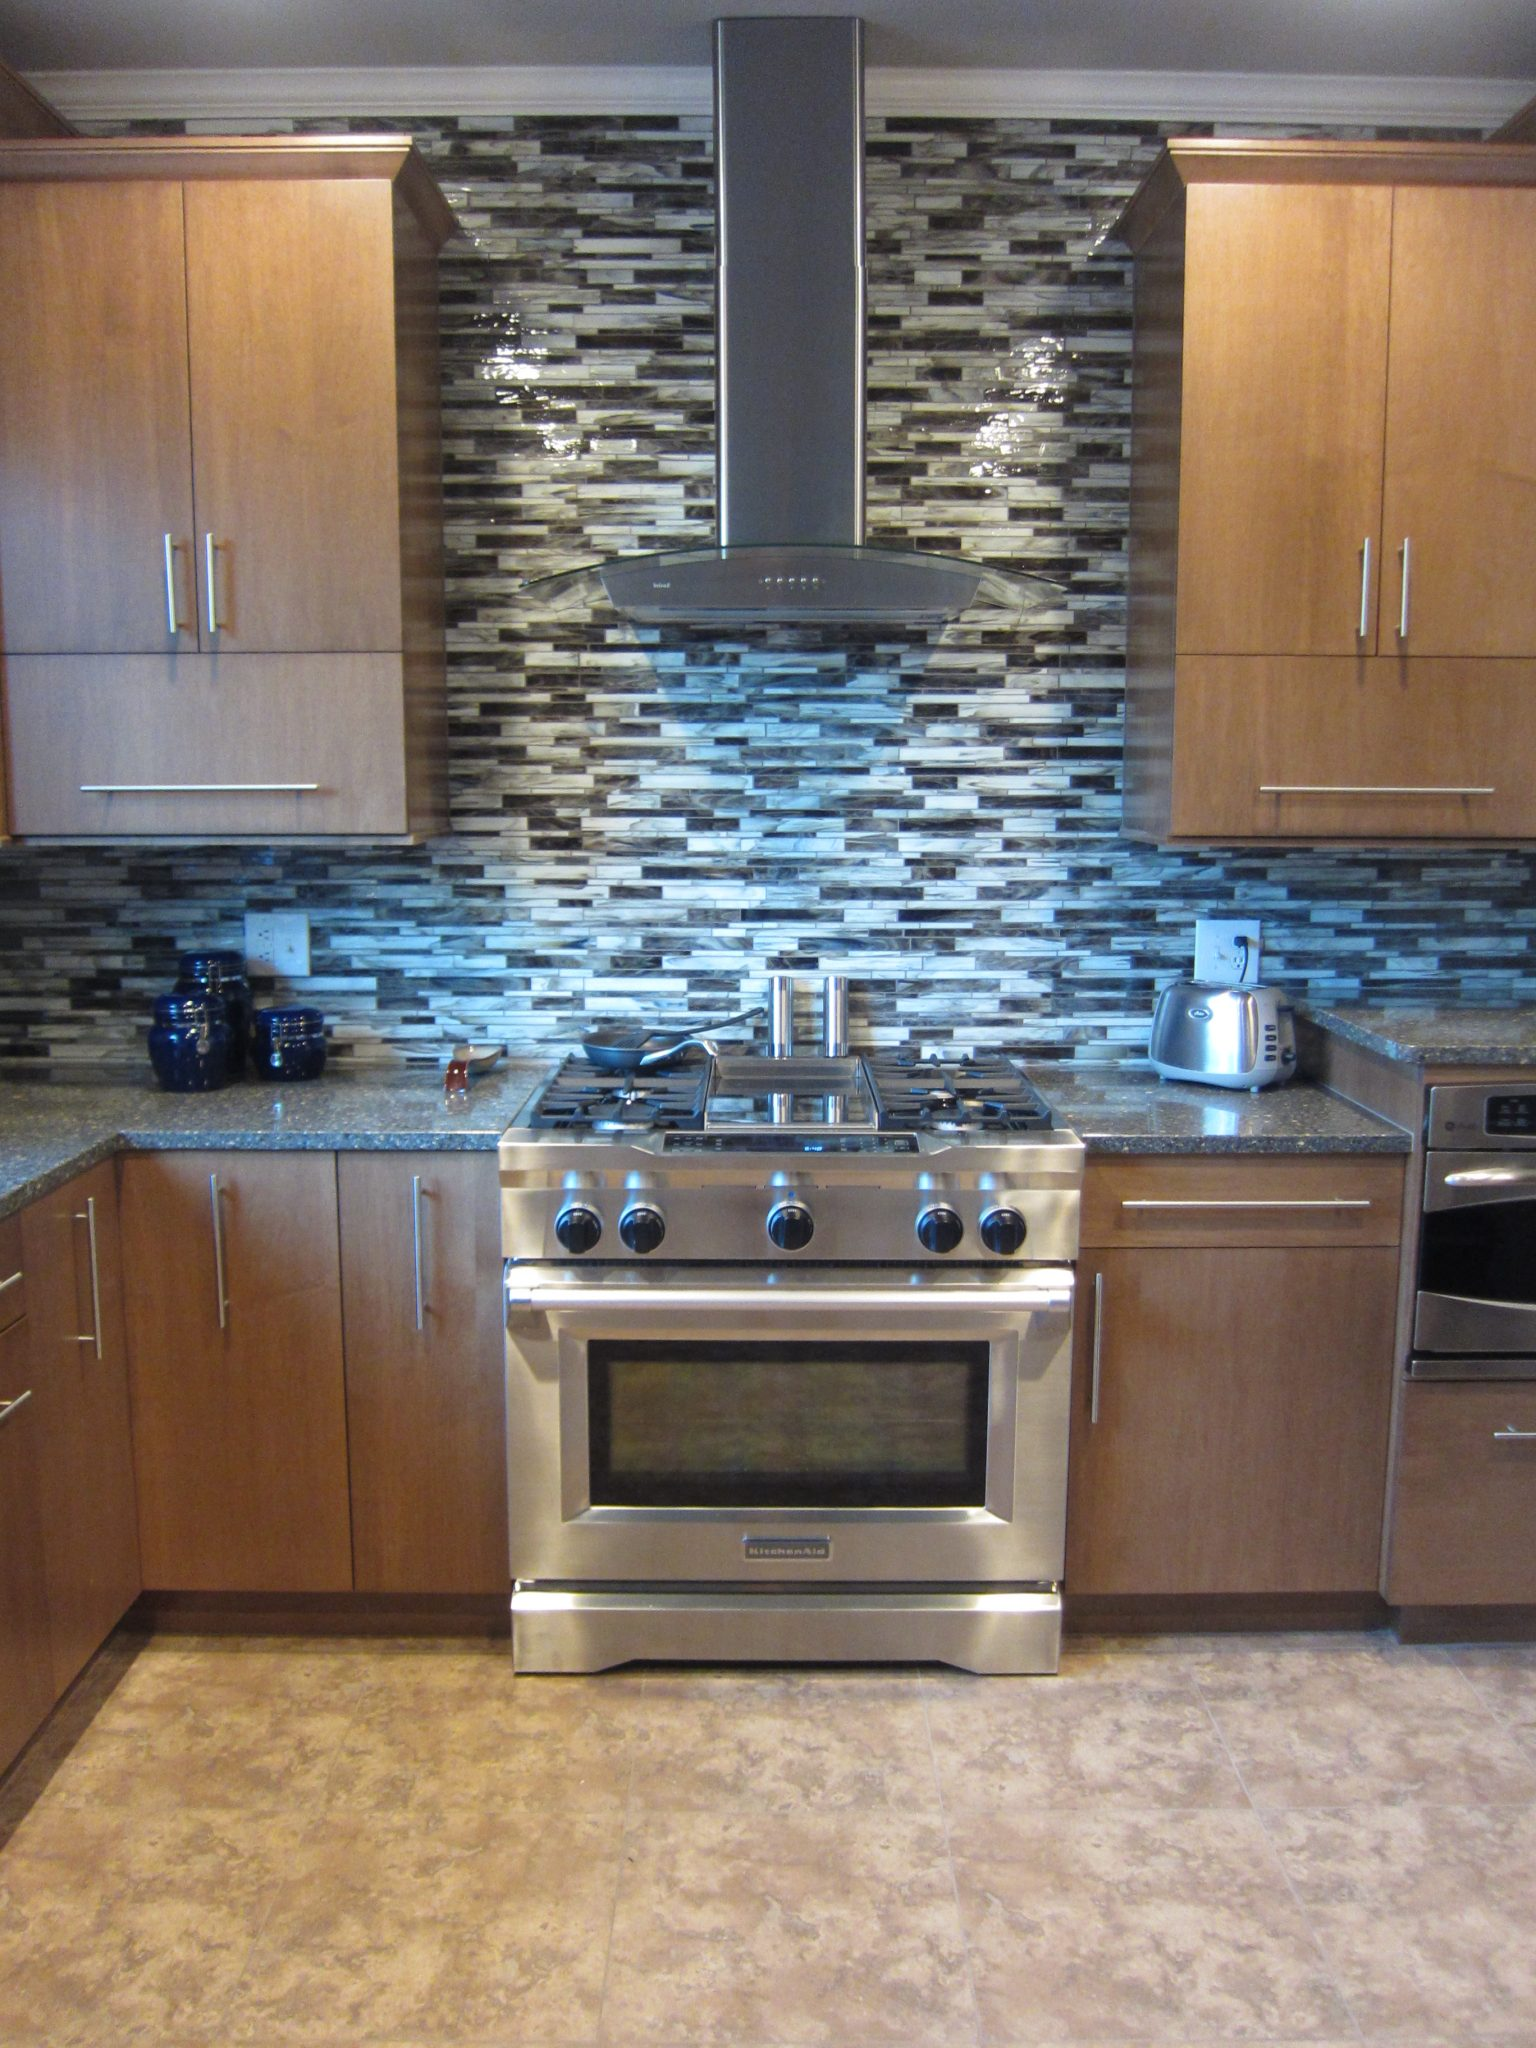 kitchen counter backsplash combos part 1 kitchen counters and backsplash This Dallas Ft Worth kitchen includes counters and backsplash which are paired with medium brown and simple cabinets as a timeless combo that will look